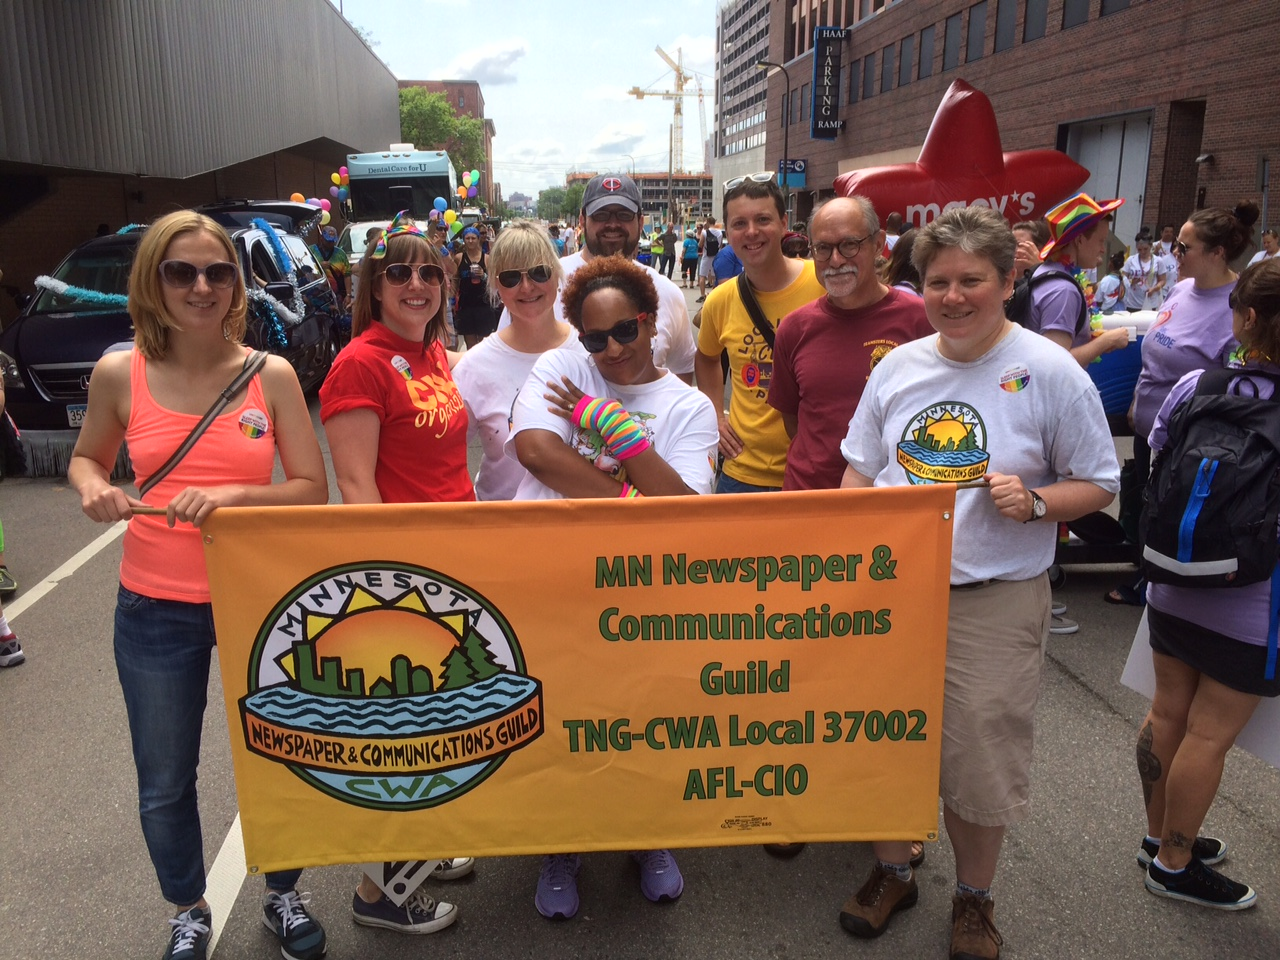 Mn Newspaper Amp Communications Guild Members March In The